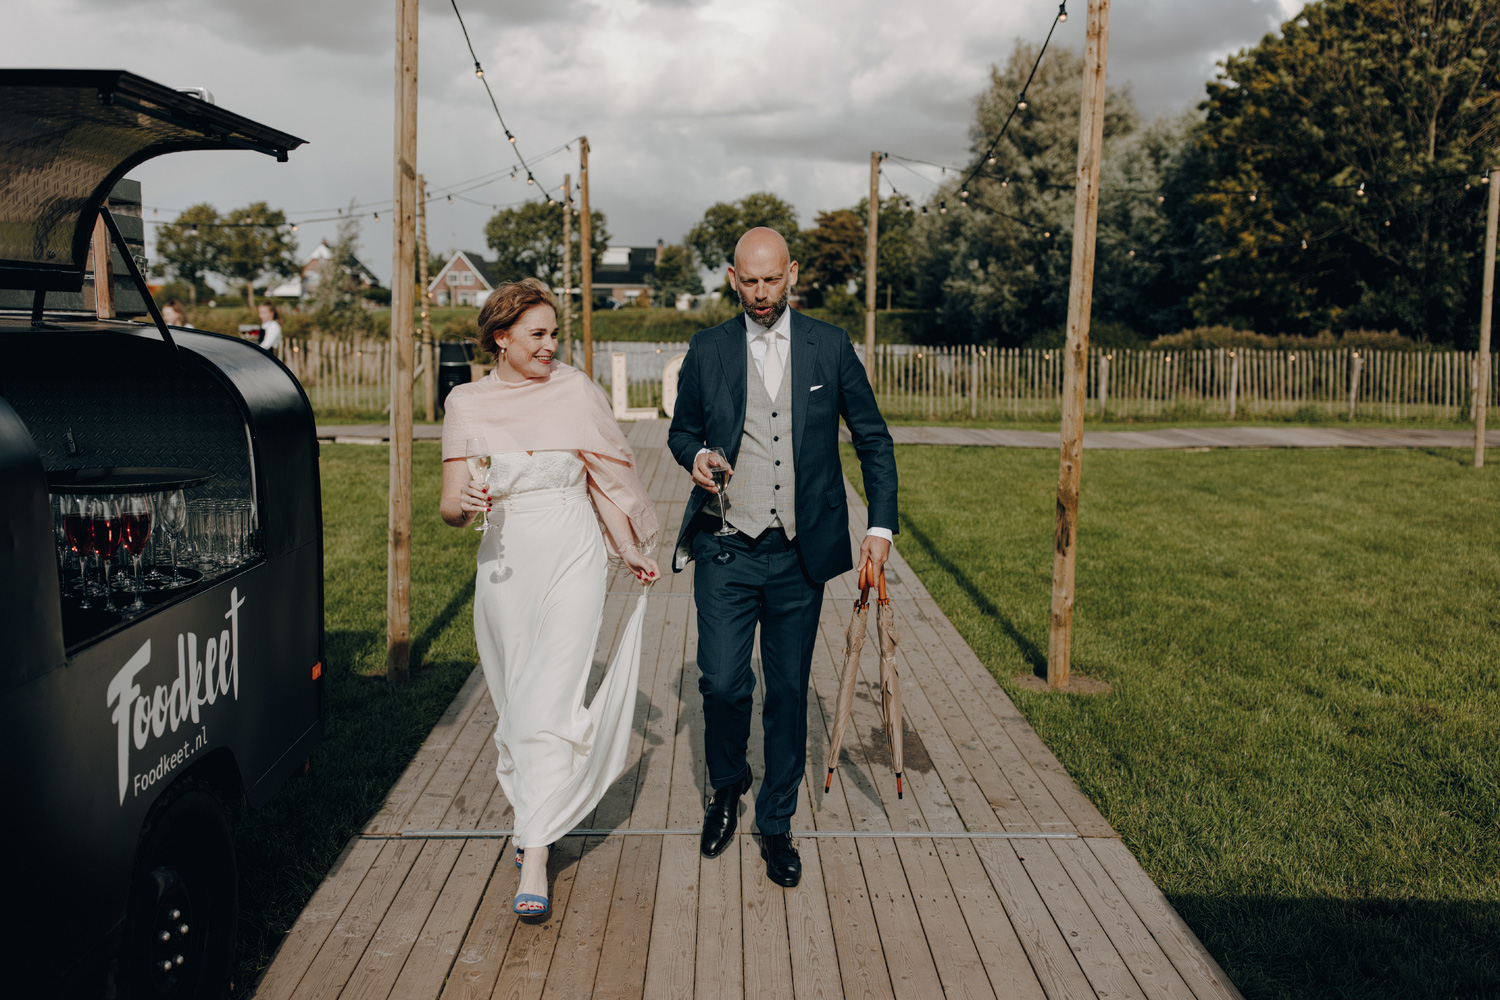 Bride and Groom arriving at outdoor wedding